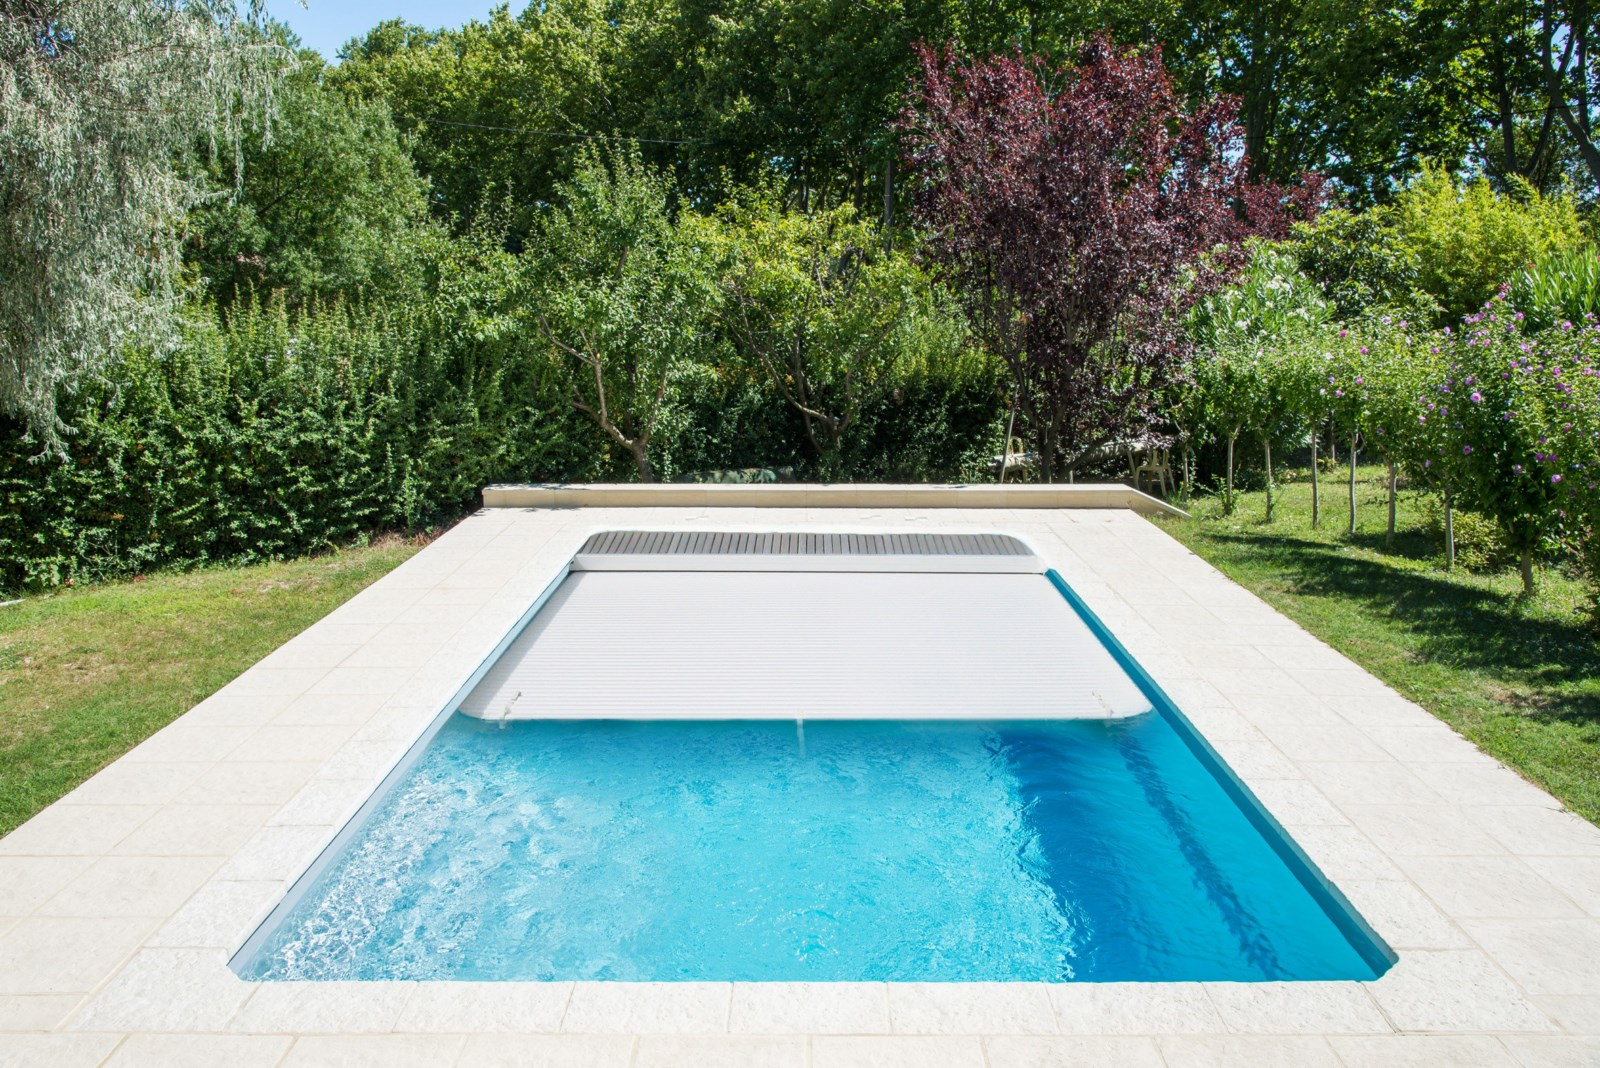 Piscine coque polyester rectangulaire mod le f ro avec for Piscine polyester